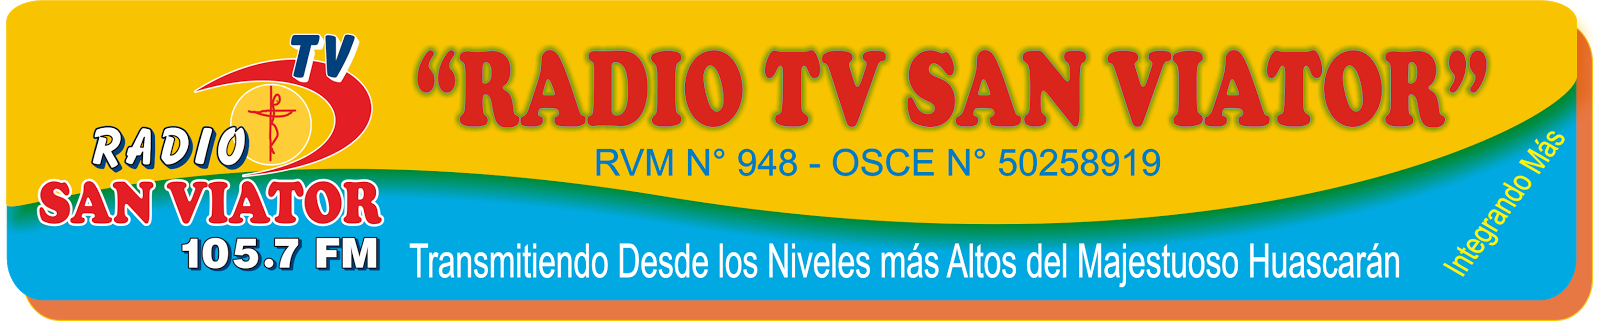 RADIO TV SAN VIATOR